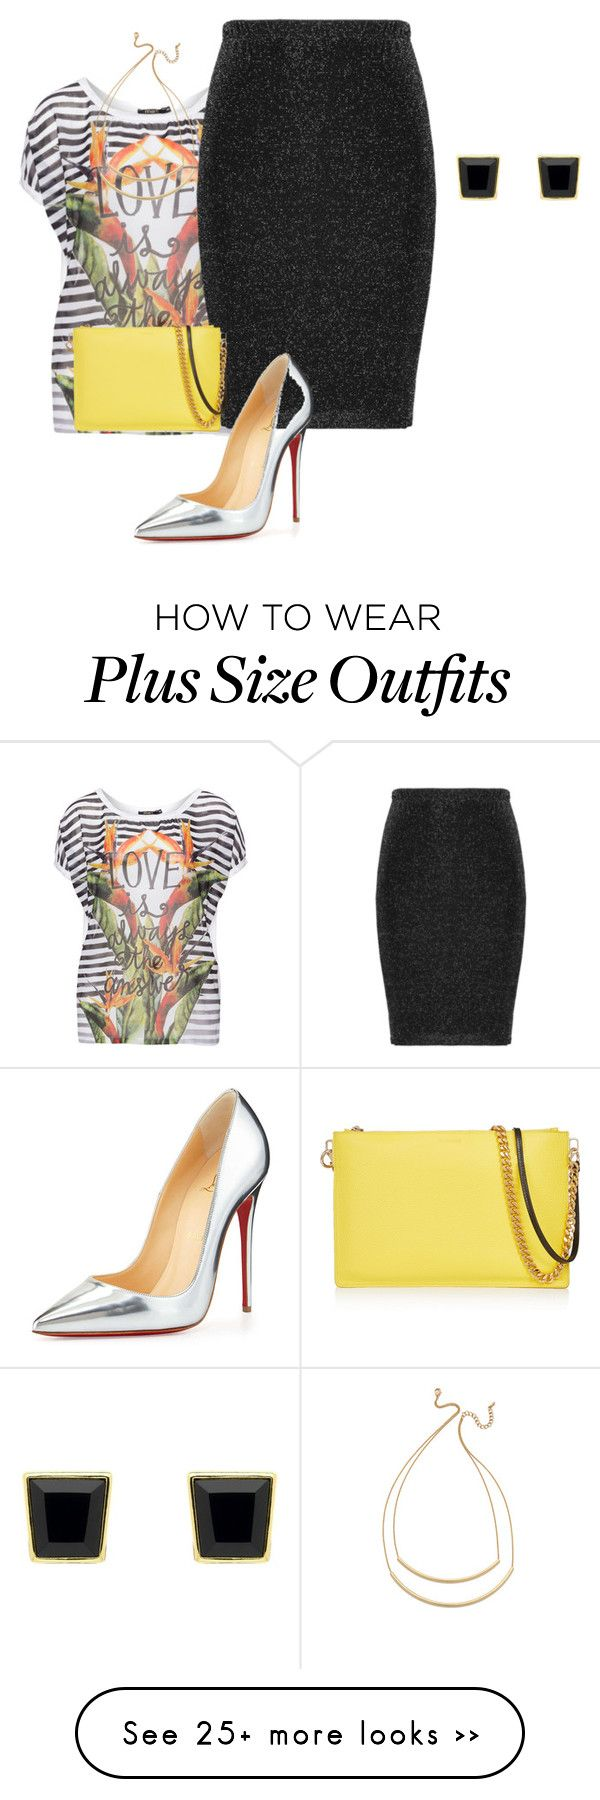 """""""plus size eclectic night out"""" by kristie-payne on Polyvore featuring Mat, Zizzi, Christian Louboutin, Jil Sander, Jules Smith and Monet"""